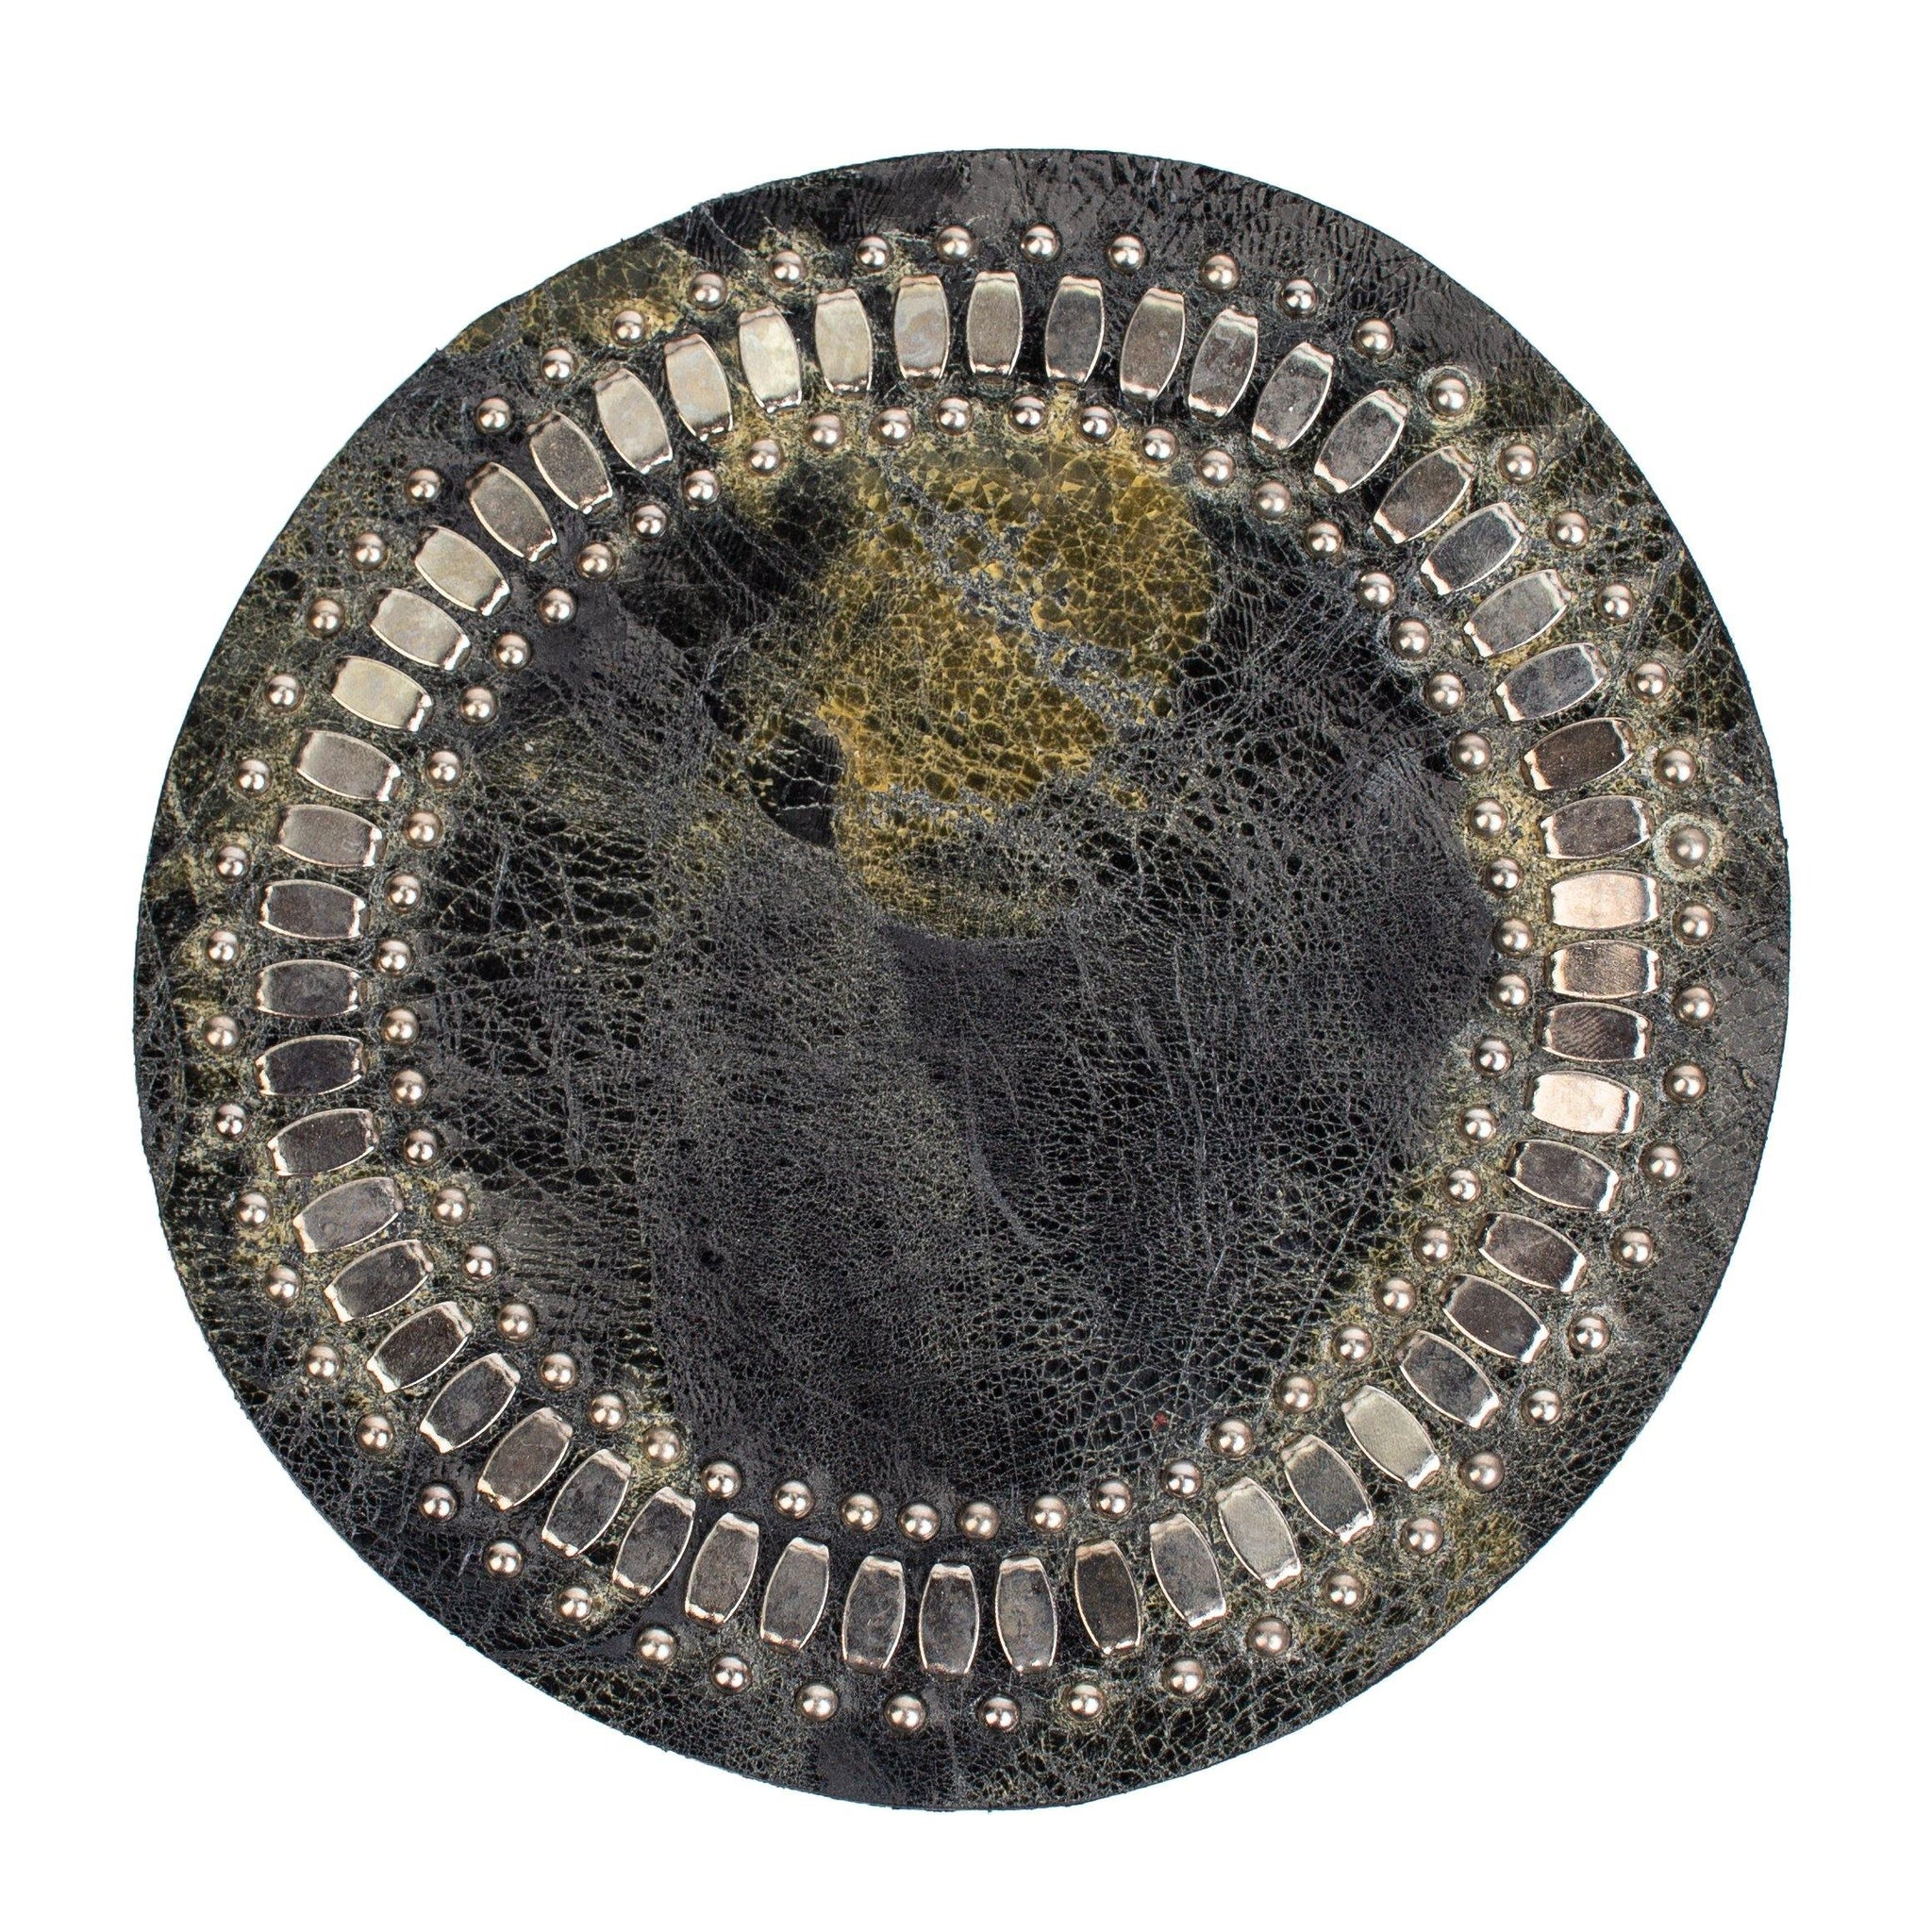 handmade black and green leather coaster with nickel studs artwork - Calleen Cordero Designs